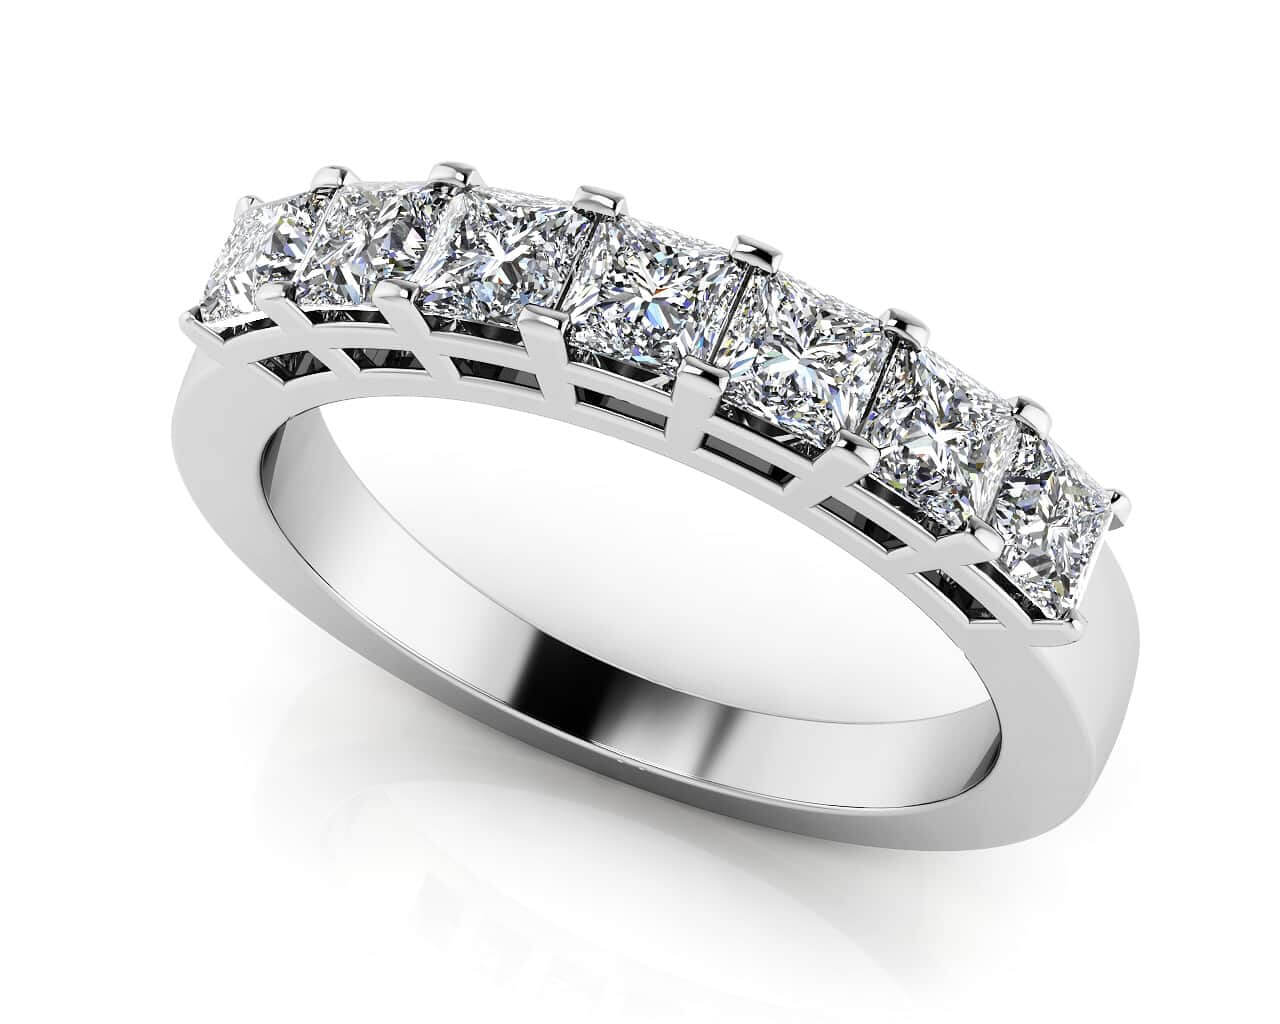 band diamonds kind best wide white by with pinterest a anniversary ascot ascotdiamonds jewellery rings bands and of on wedding ringsdiamond images black one